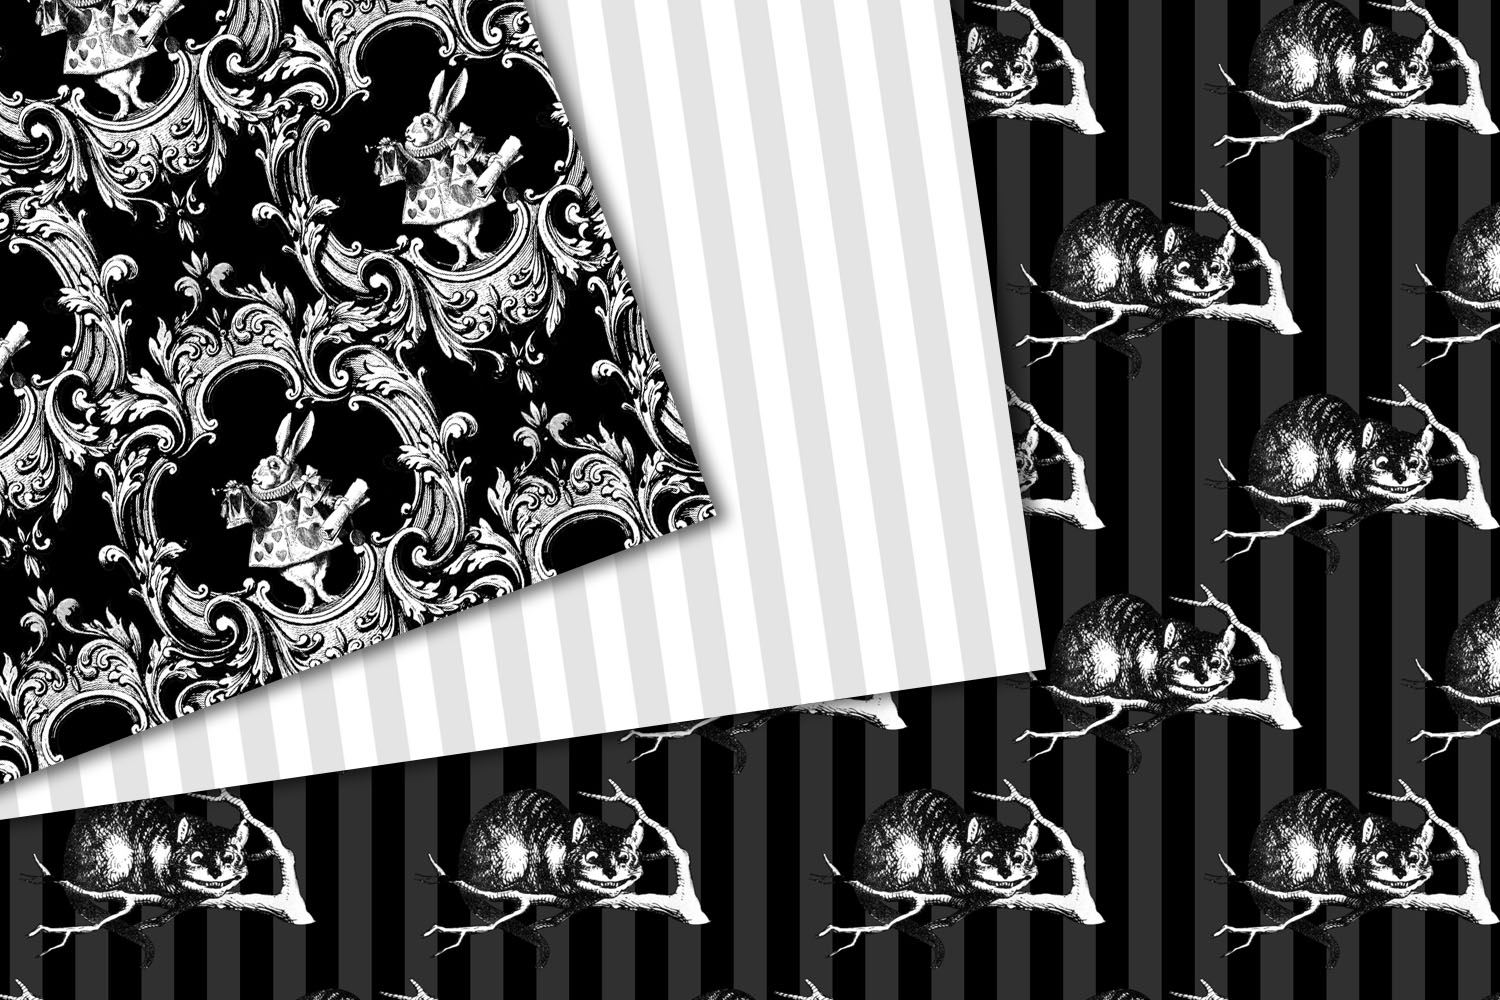 Black and White Alice in Wonderland Graphics example image 4